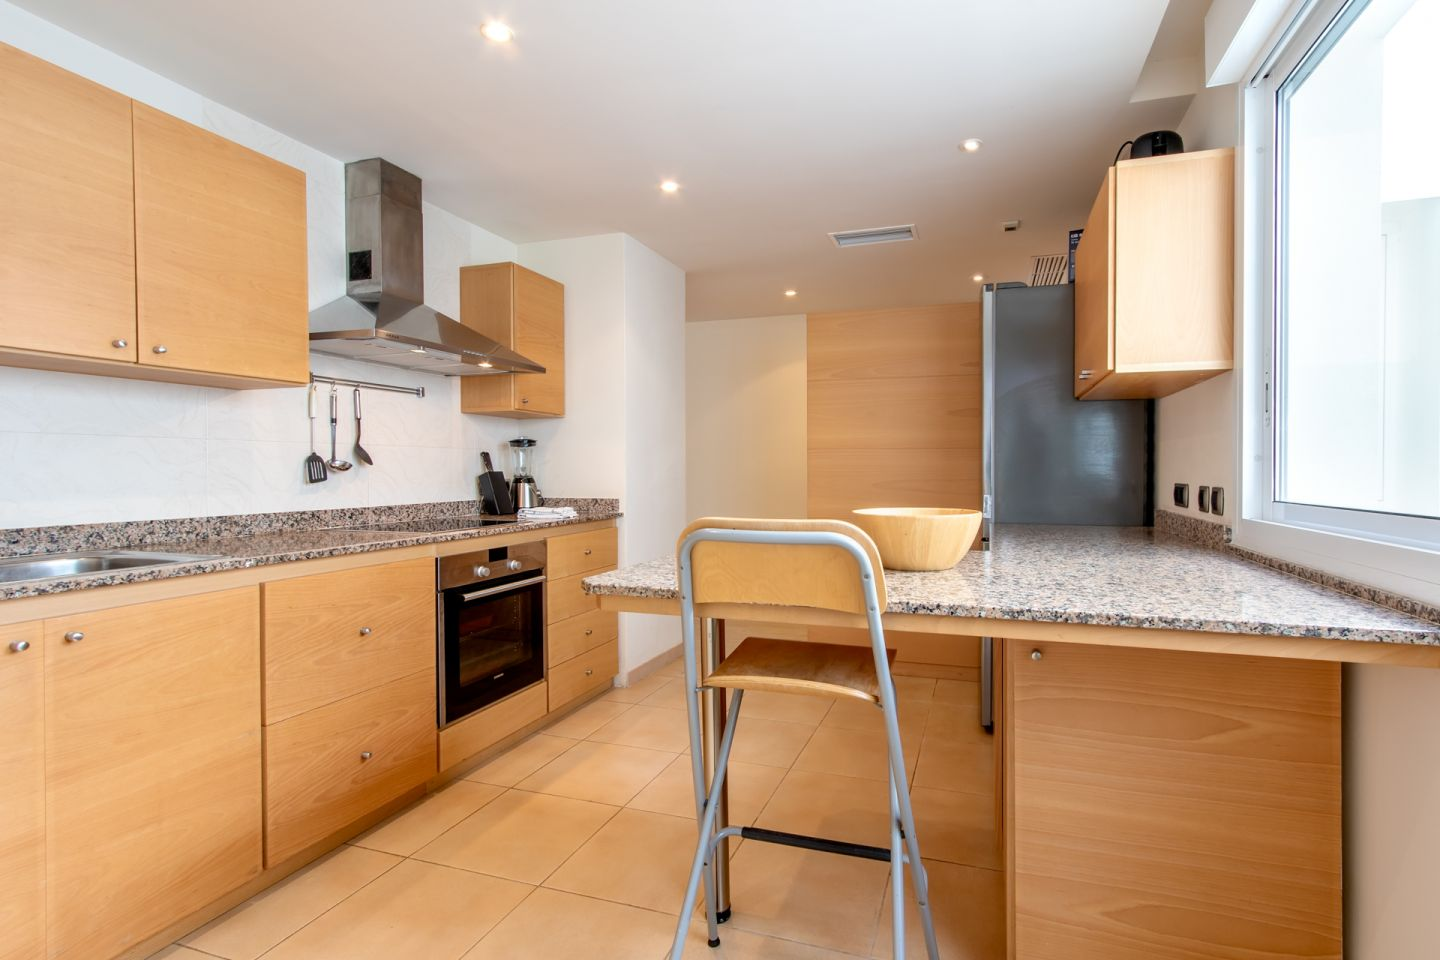 3 Bed Apartment for sale in PUERTO POLLENSA 7